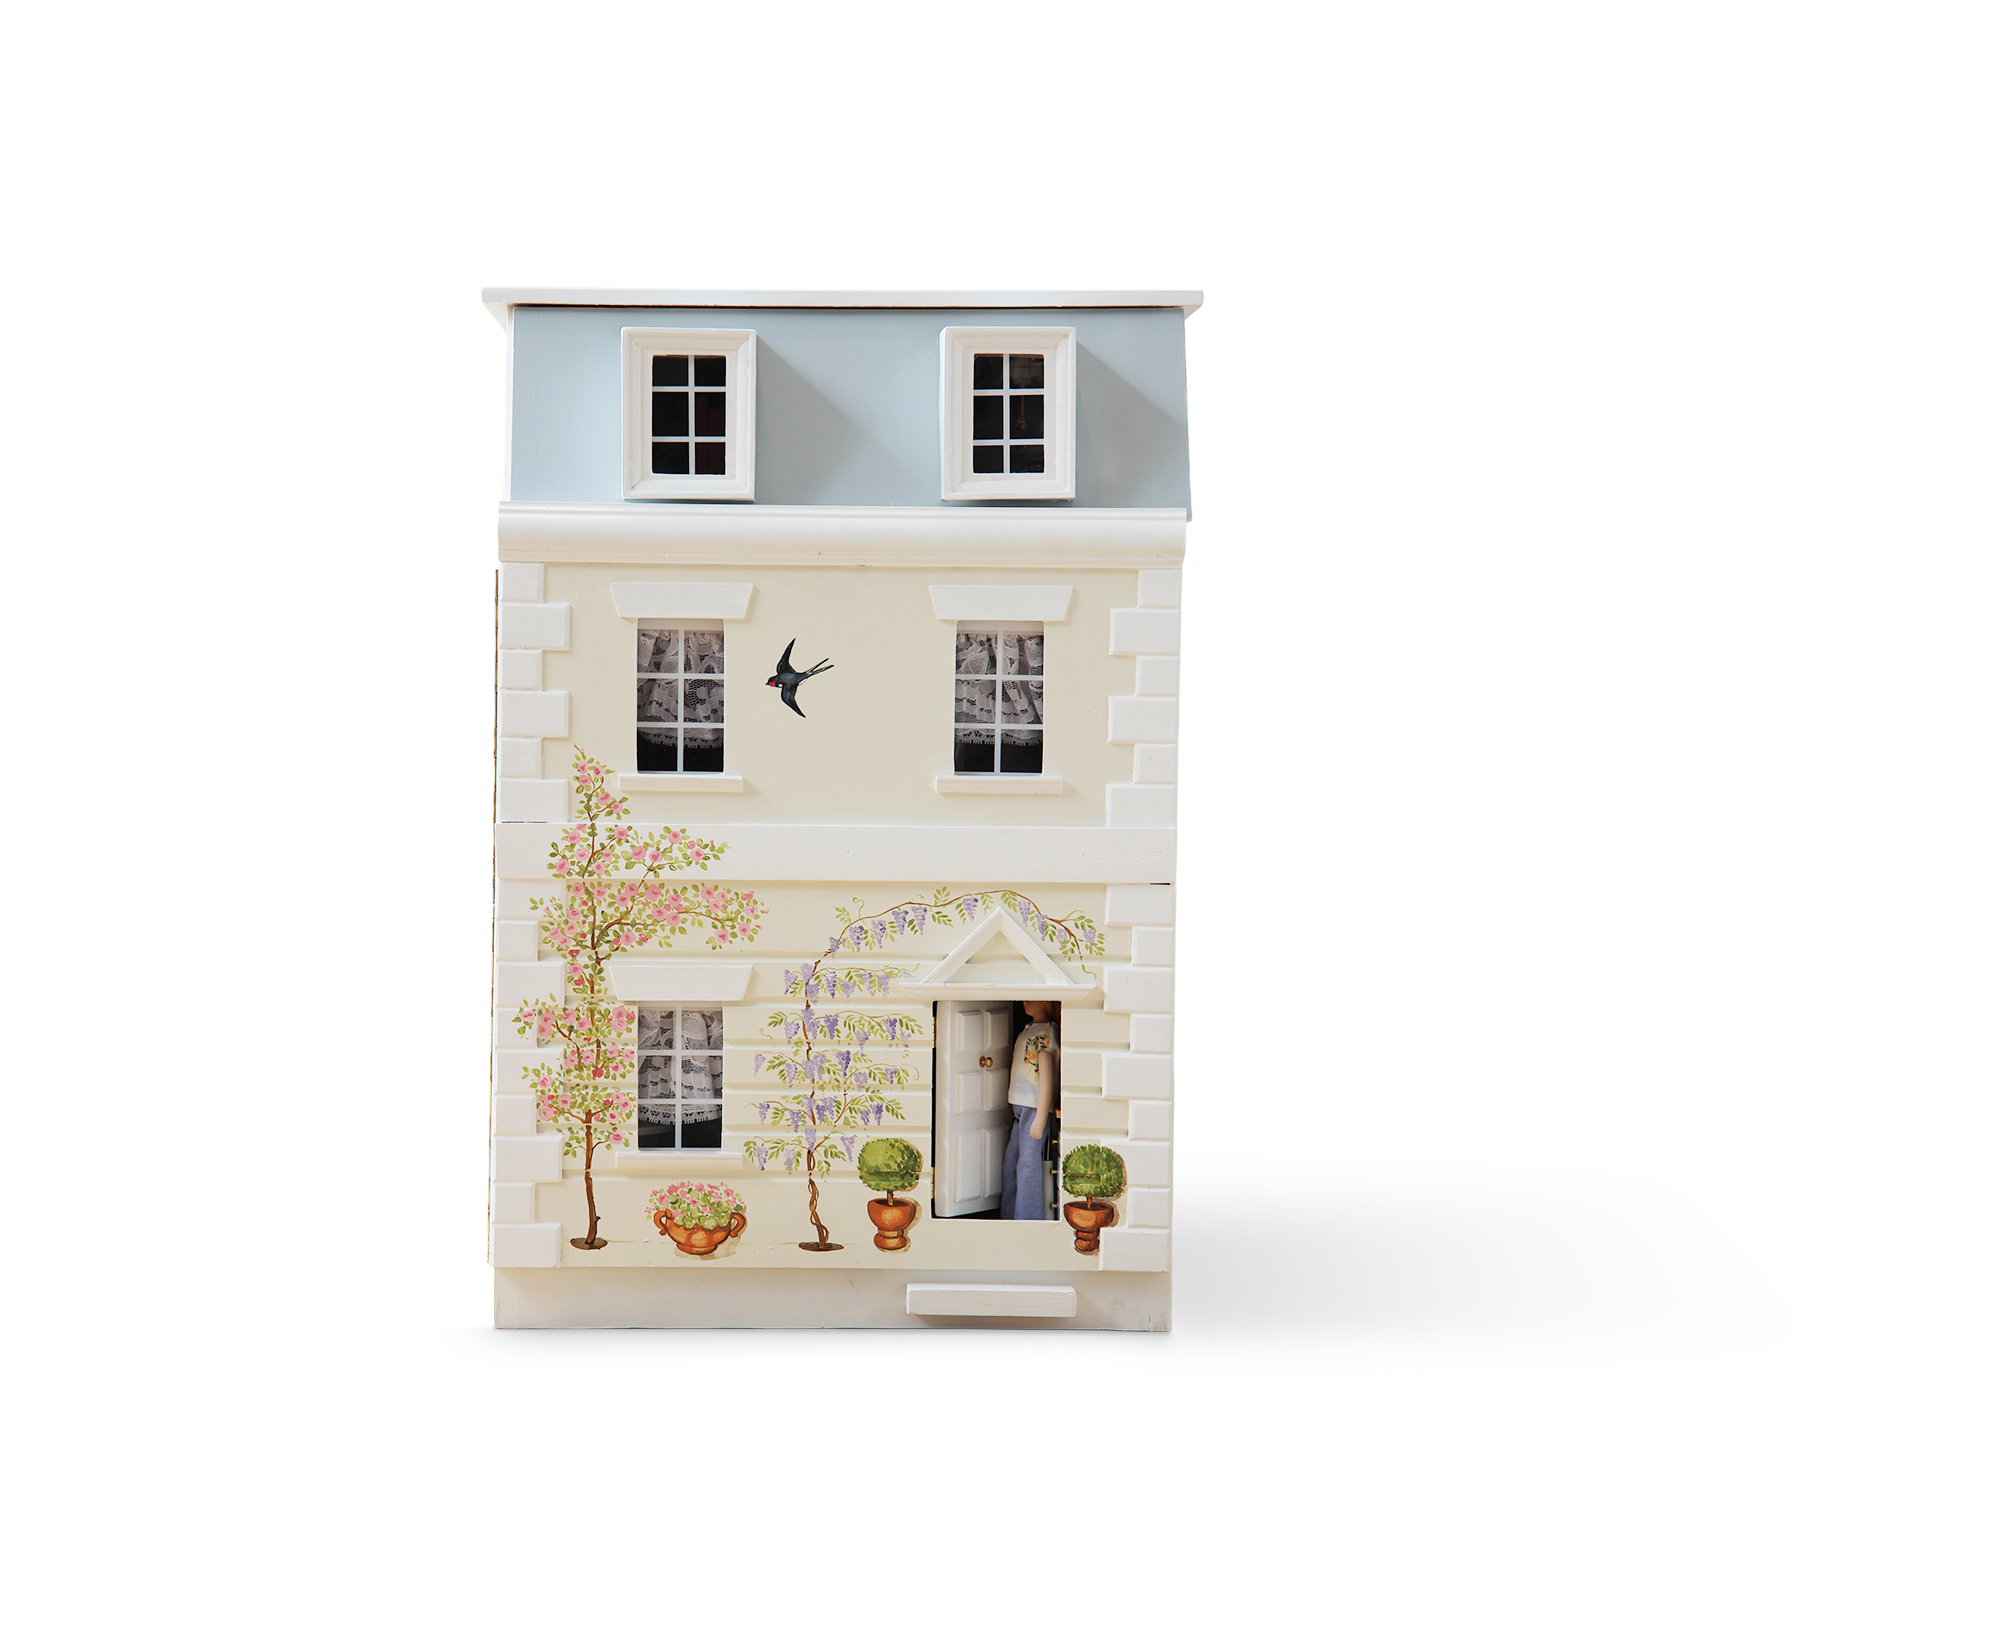 The dolls' house-maker: 'This is a place to capture the dreams of children and adults alike' - Country Life